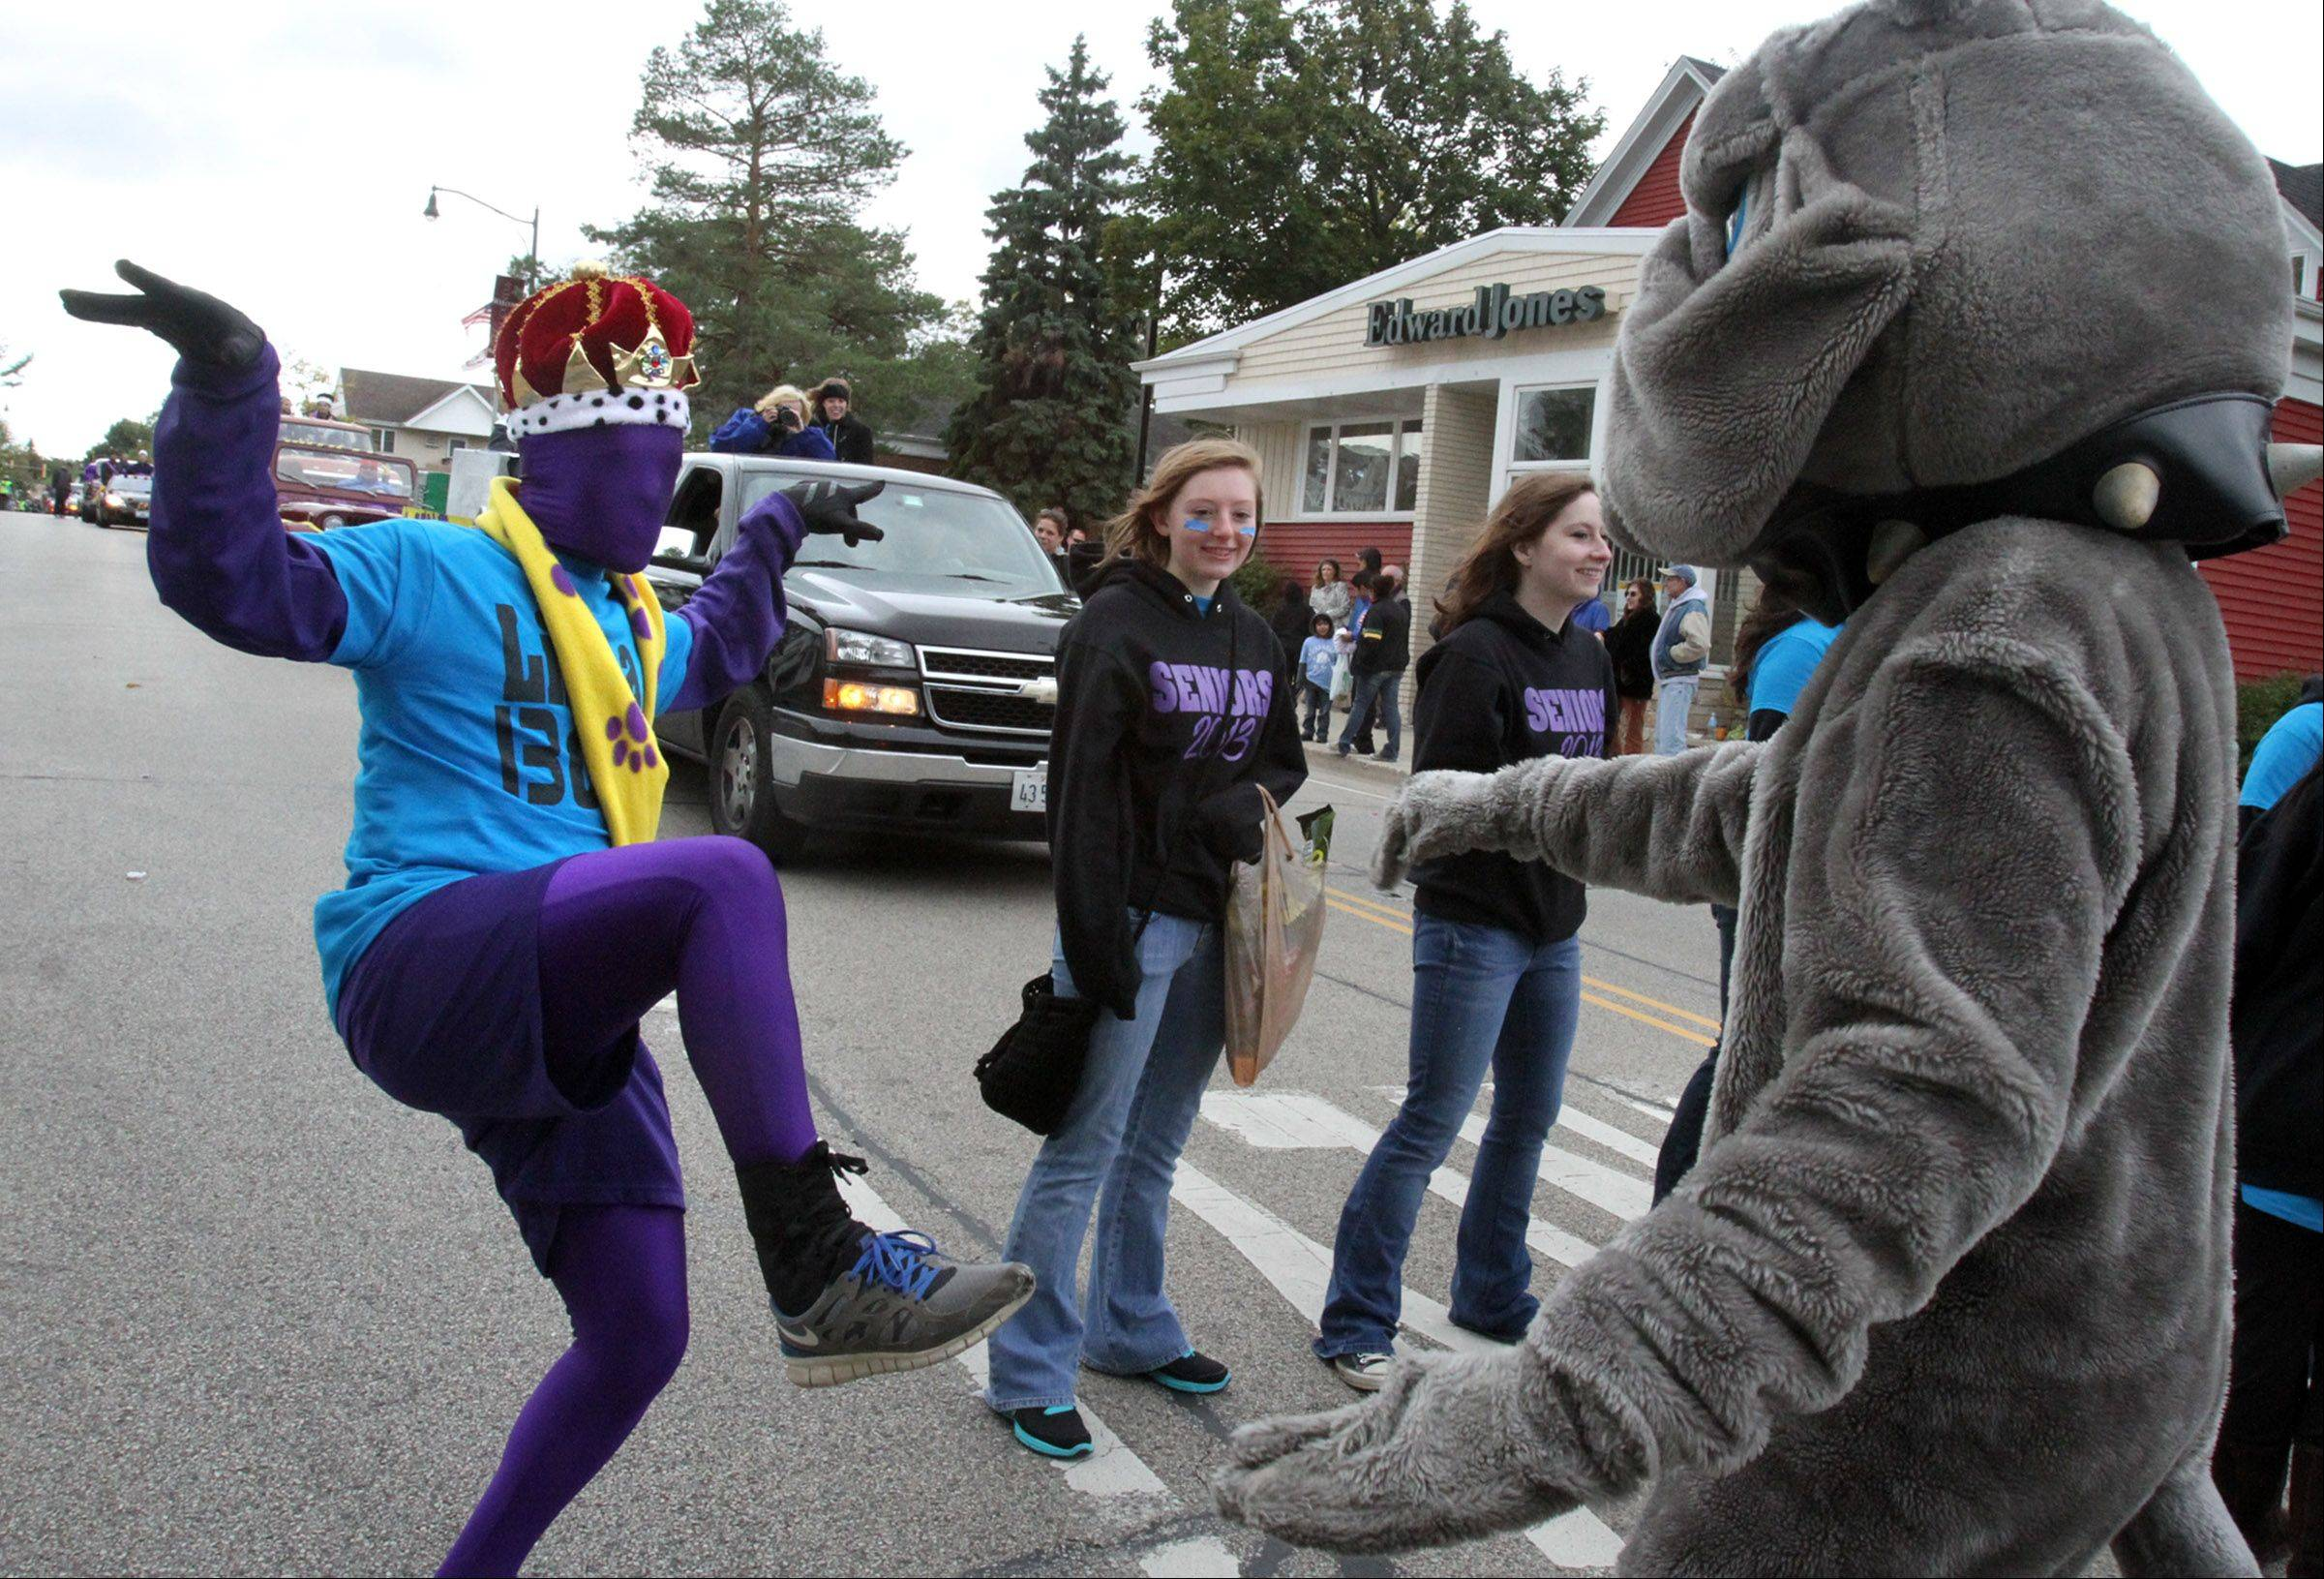 Ryan Geary, wearing a Mr. Bulldog crown, and Erik Molenda, in bulldog costume, dance around while marching in Wauconda High School's Homecoming parade.